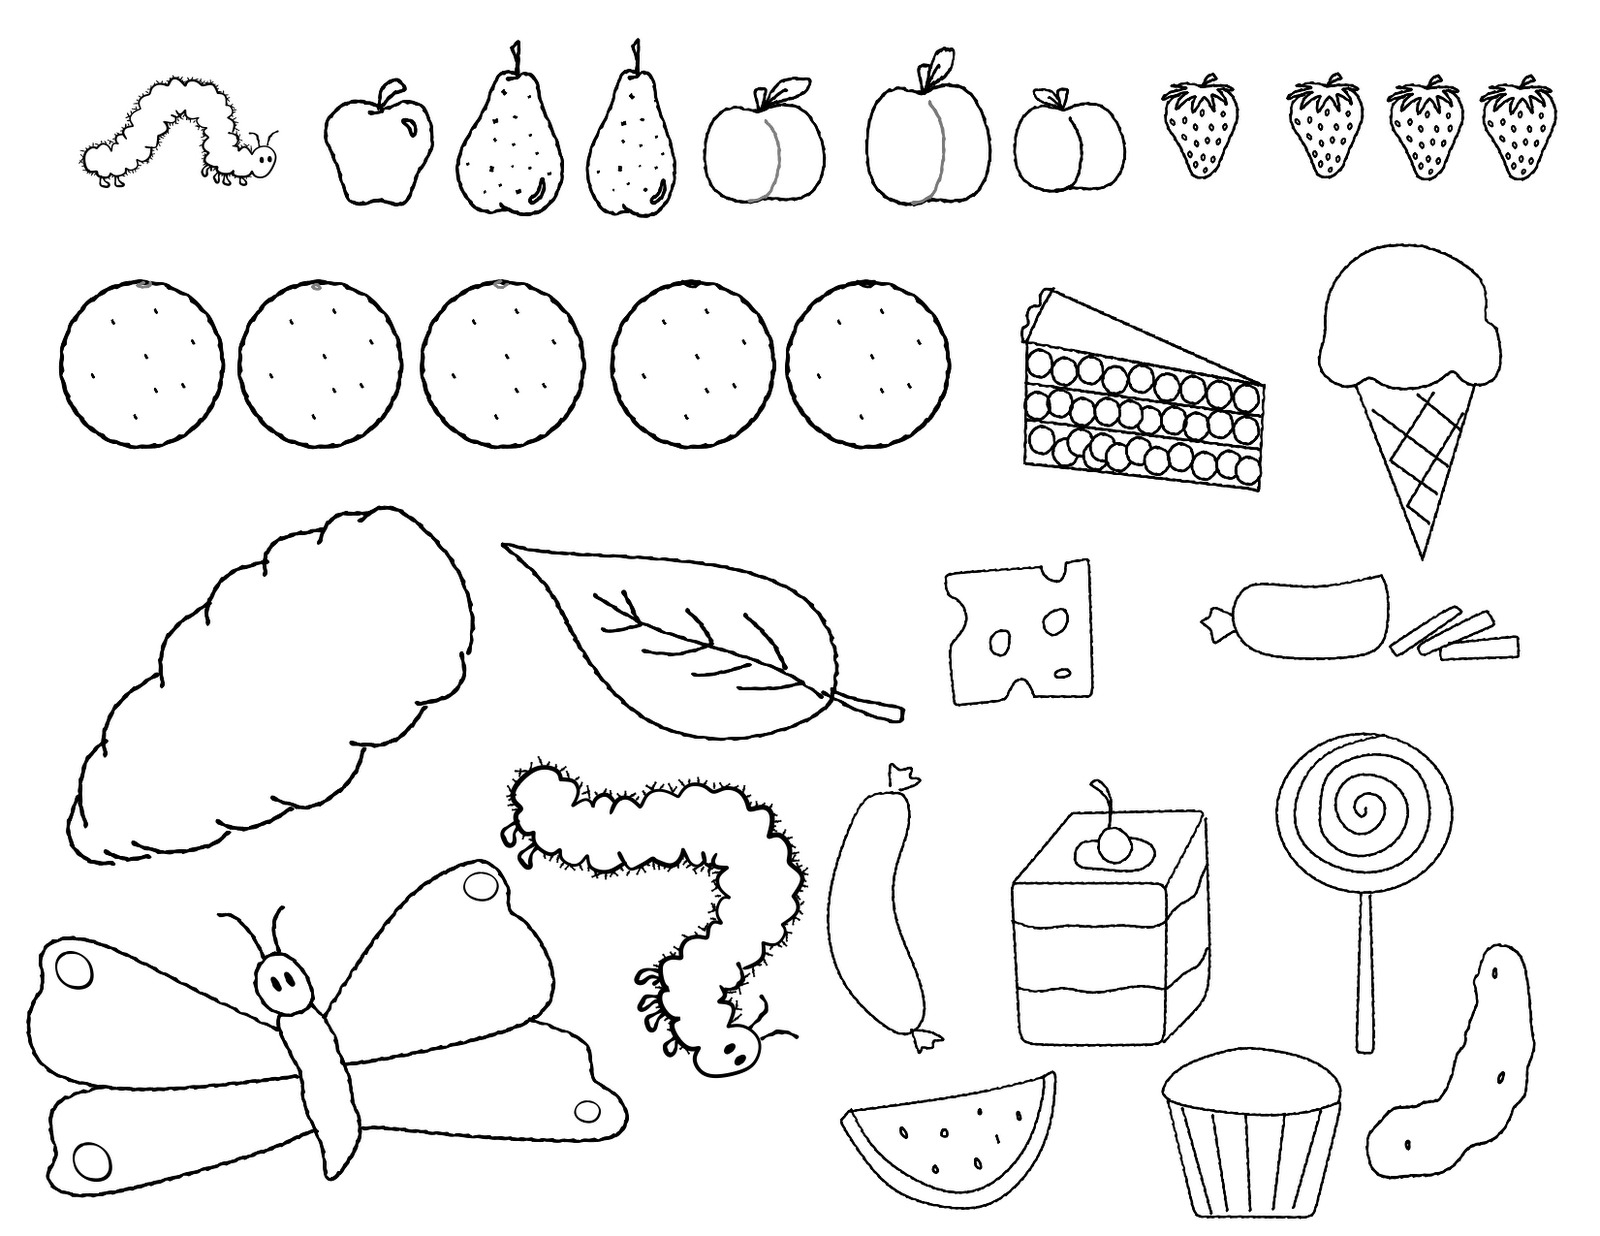 26 Printable Caterpillar Coloring Pages Download Coloring